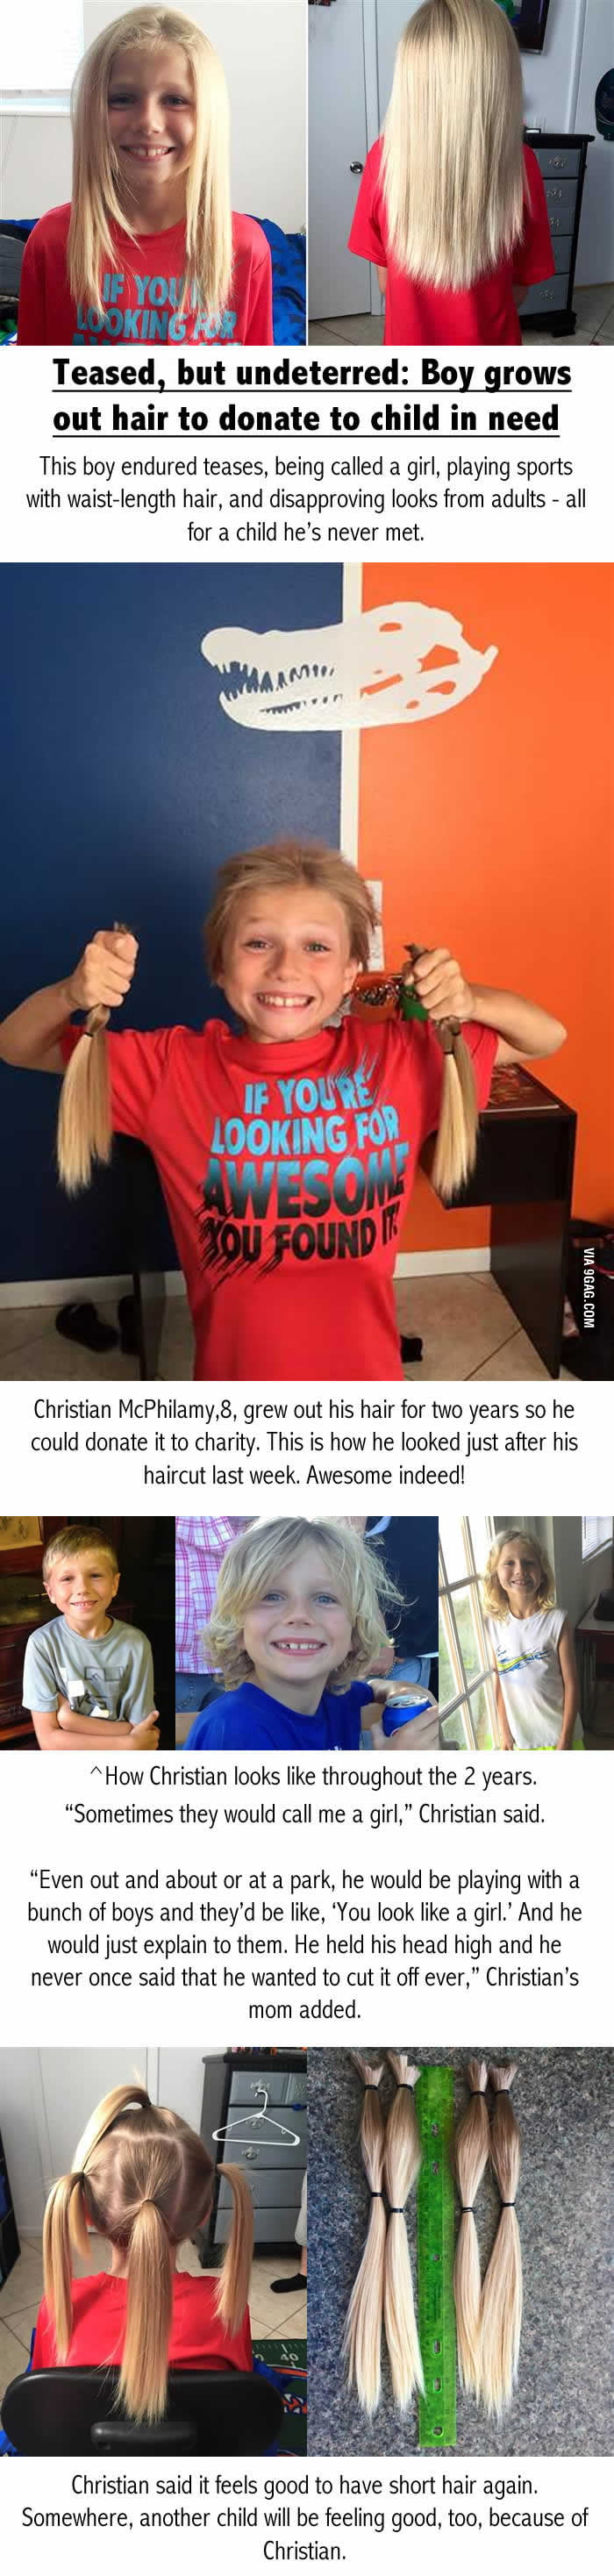 This kid is going places! Faith in humanity restored!